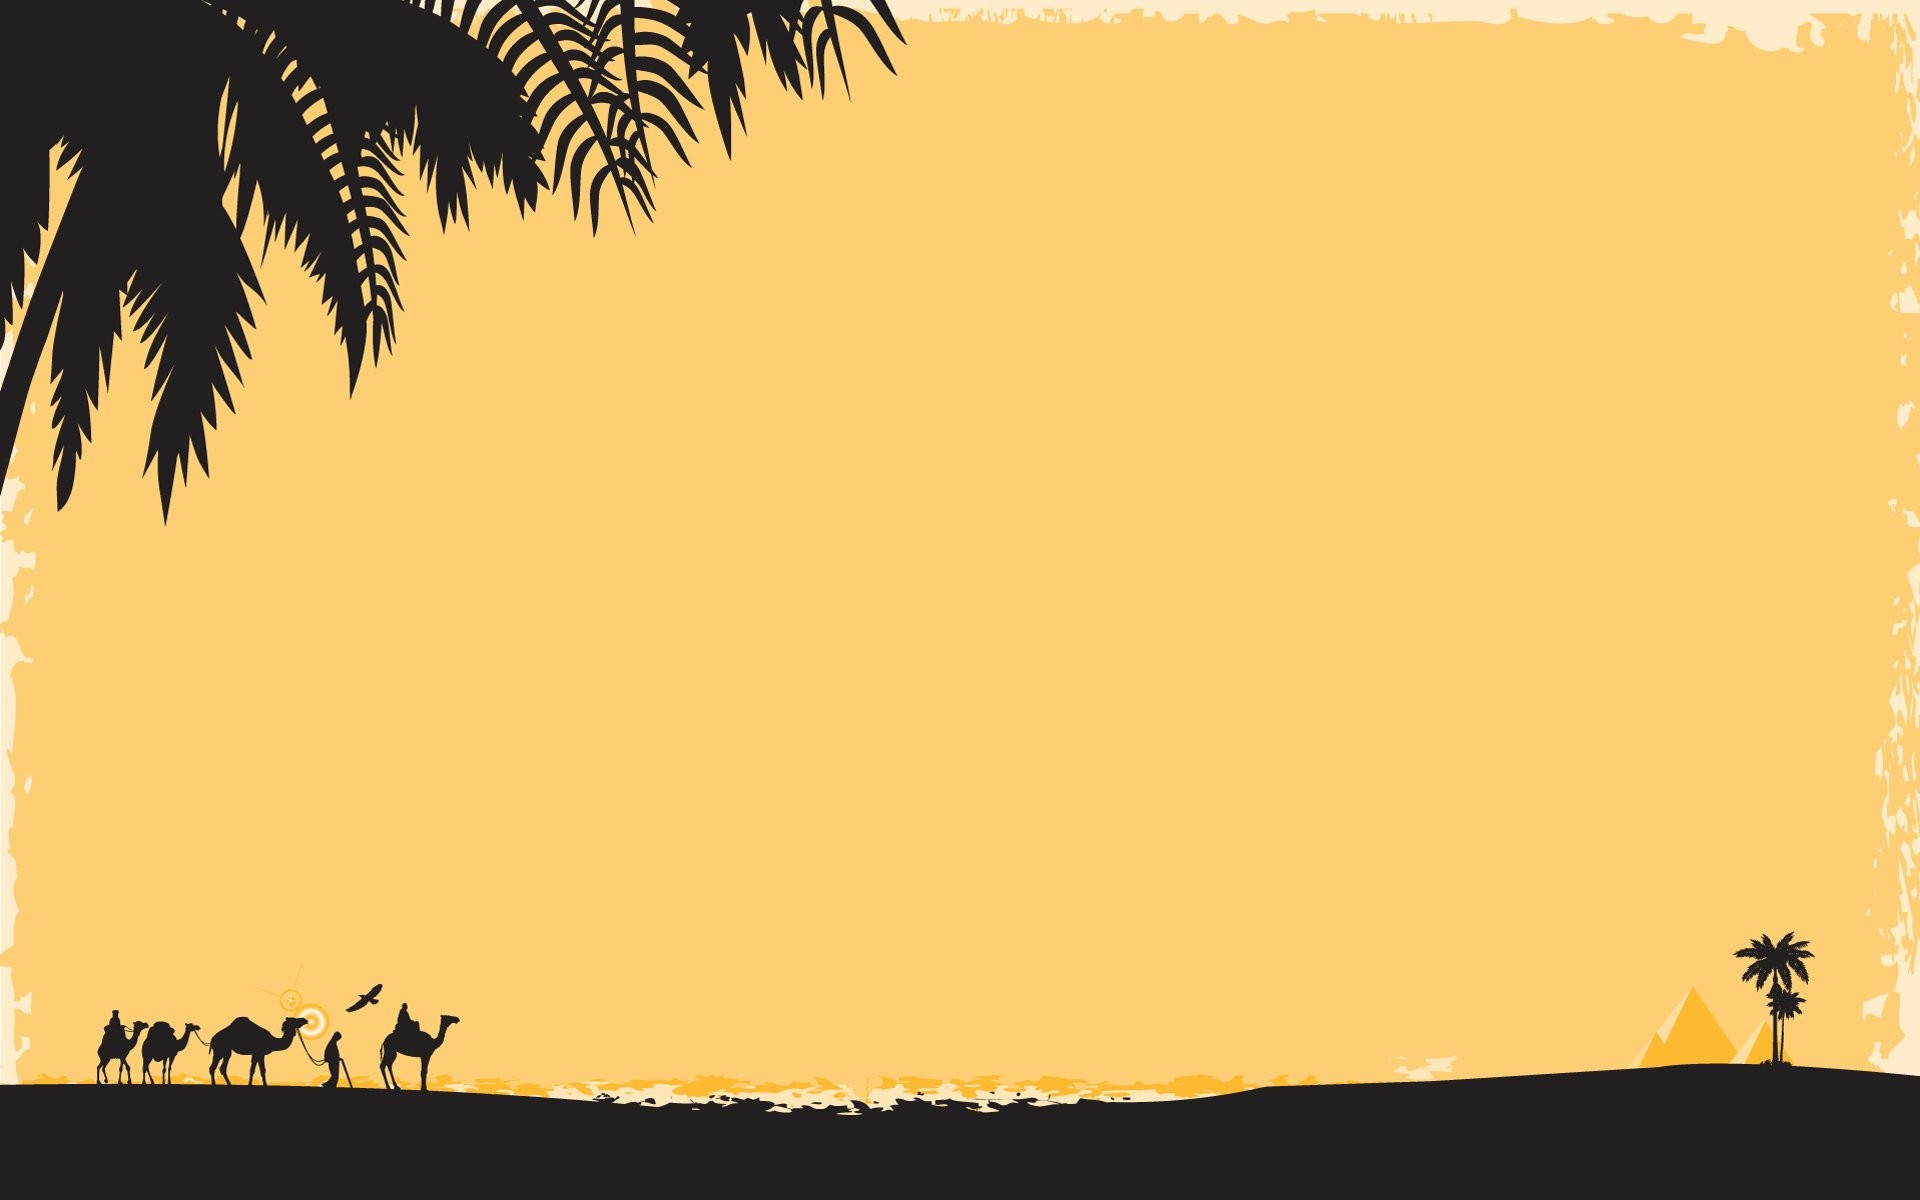 Res: 1920x1200, Deserts silhouettes Egypt oasis wallpaper |  | 296920 | WallpaperUP